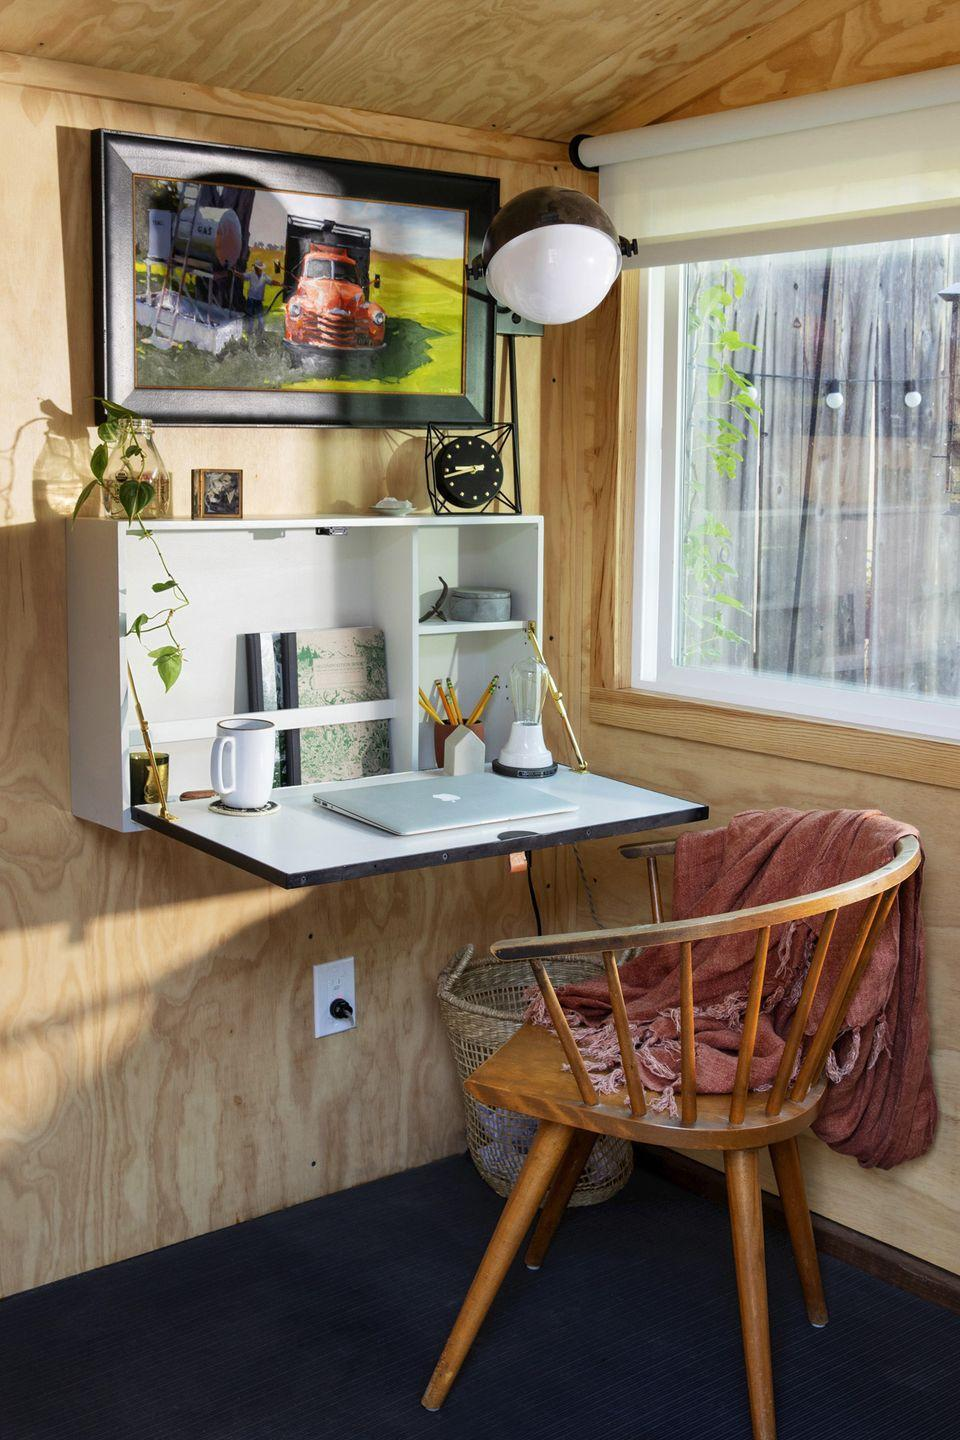 """<p>If you can't designate an entire room for a home office, add a flip-down work area to just about any corner. Even when your work day is over, you can keep your notebooks, laptop and other supplies tucked inside — out of sight, out of mind.</p><p><strong>RELATED:</strong> <a href=""""https://www.goodhousekeeping.com/home/organizing/g25576393/desk-organization-ideas/"""" rel=""""nofollow noopener"""" target=""""_blank"""" data-ylk=""""slk:Easy Ways to Organize Your Desk"""" class=""""link rapid-noclick-resp"""">Easy Ways to Organize Your Desk</a></p>"""